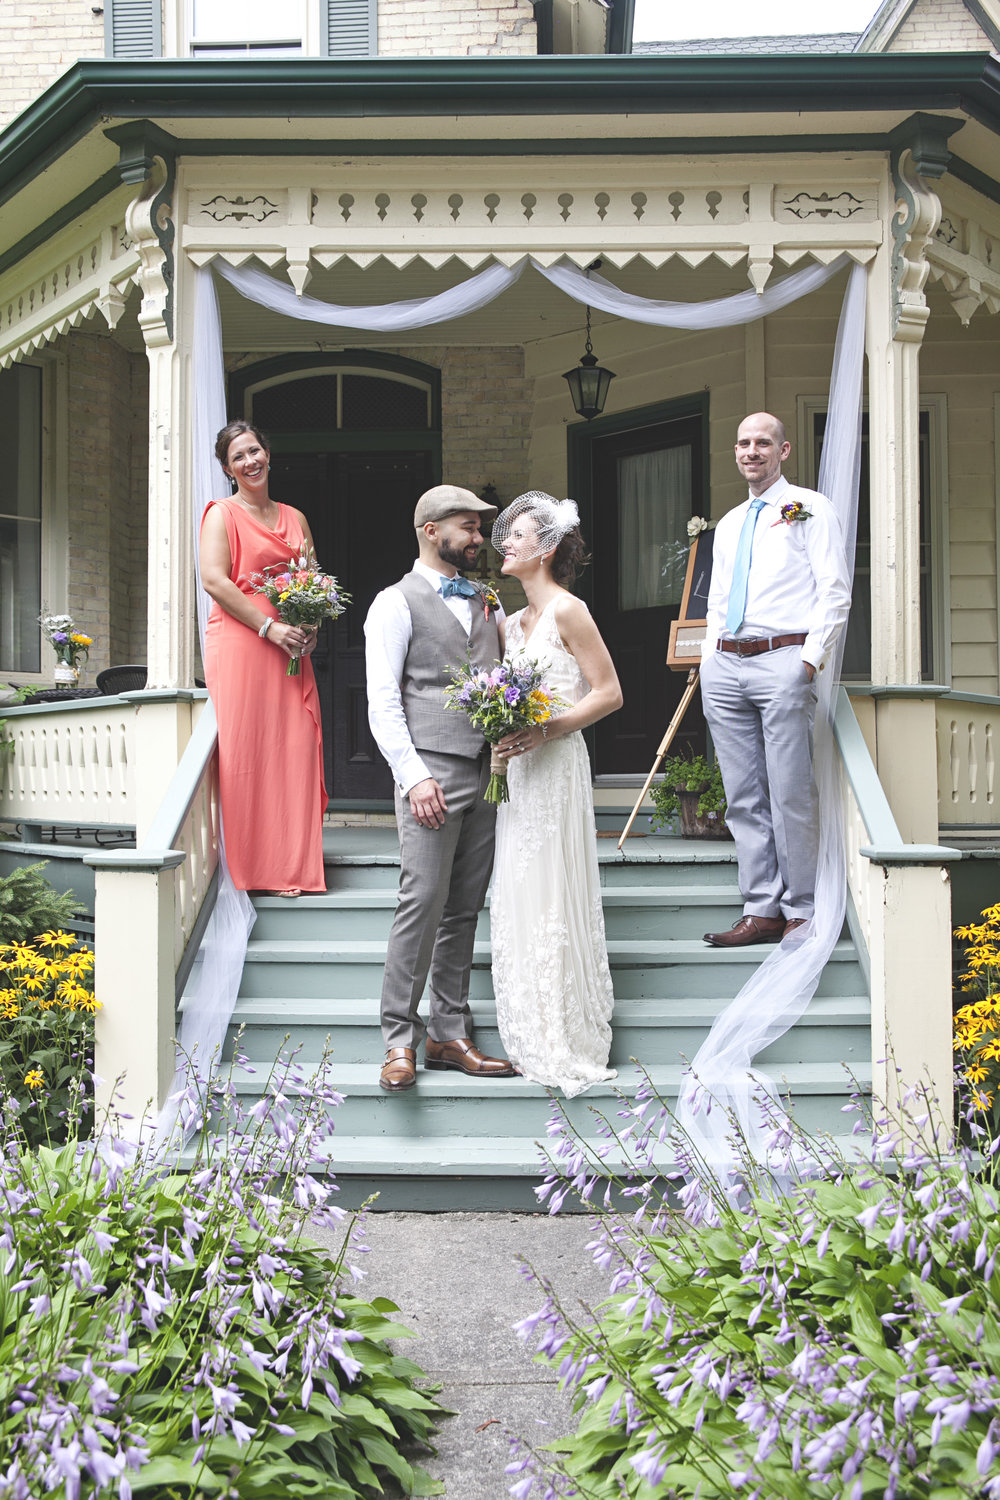 Bridal party photos at farm house in Ontario